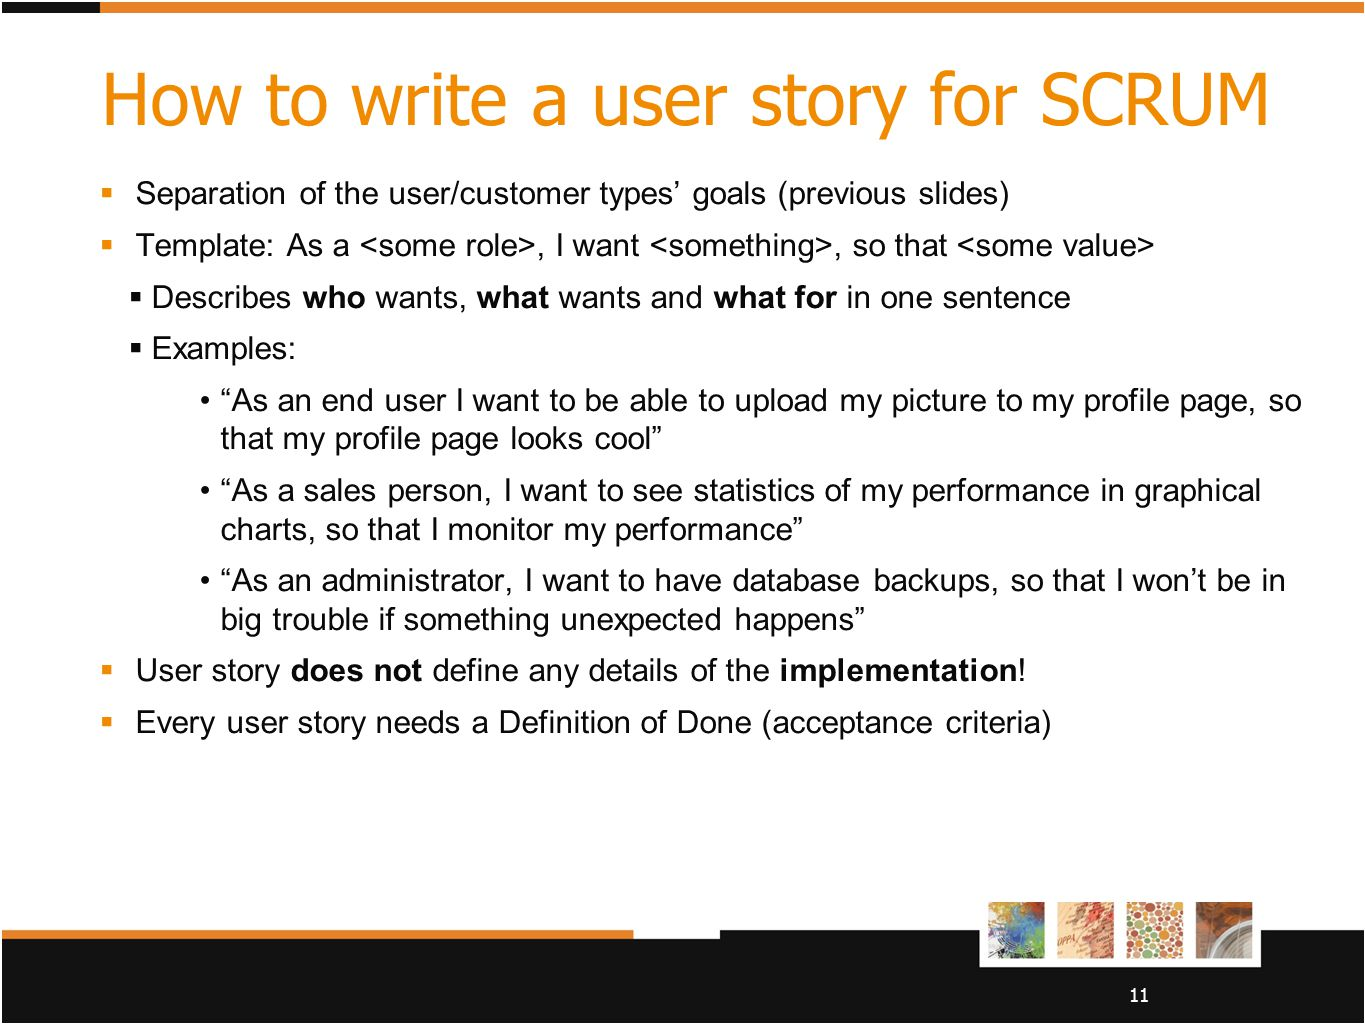 User story in brief merja bauters ppt video online download for Scrum user stories template